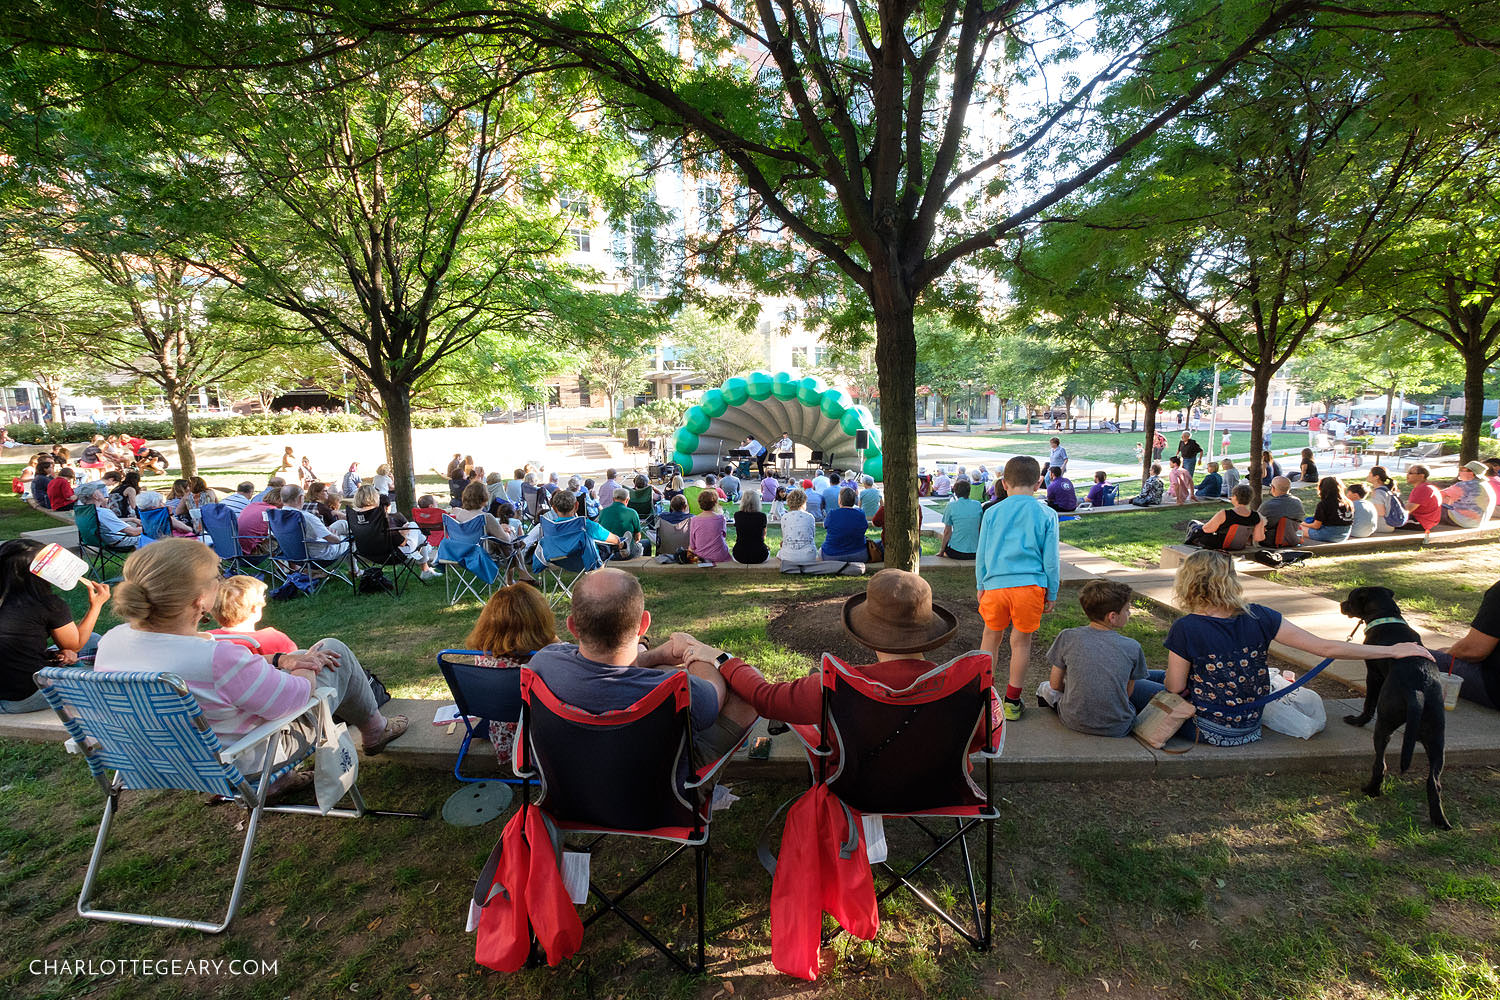 Reston Town Center Sunday concert in the park